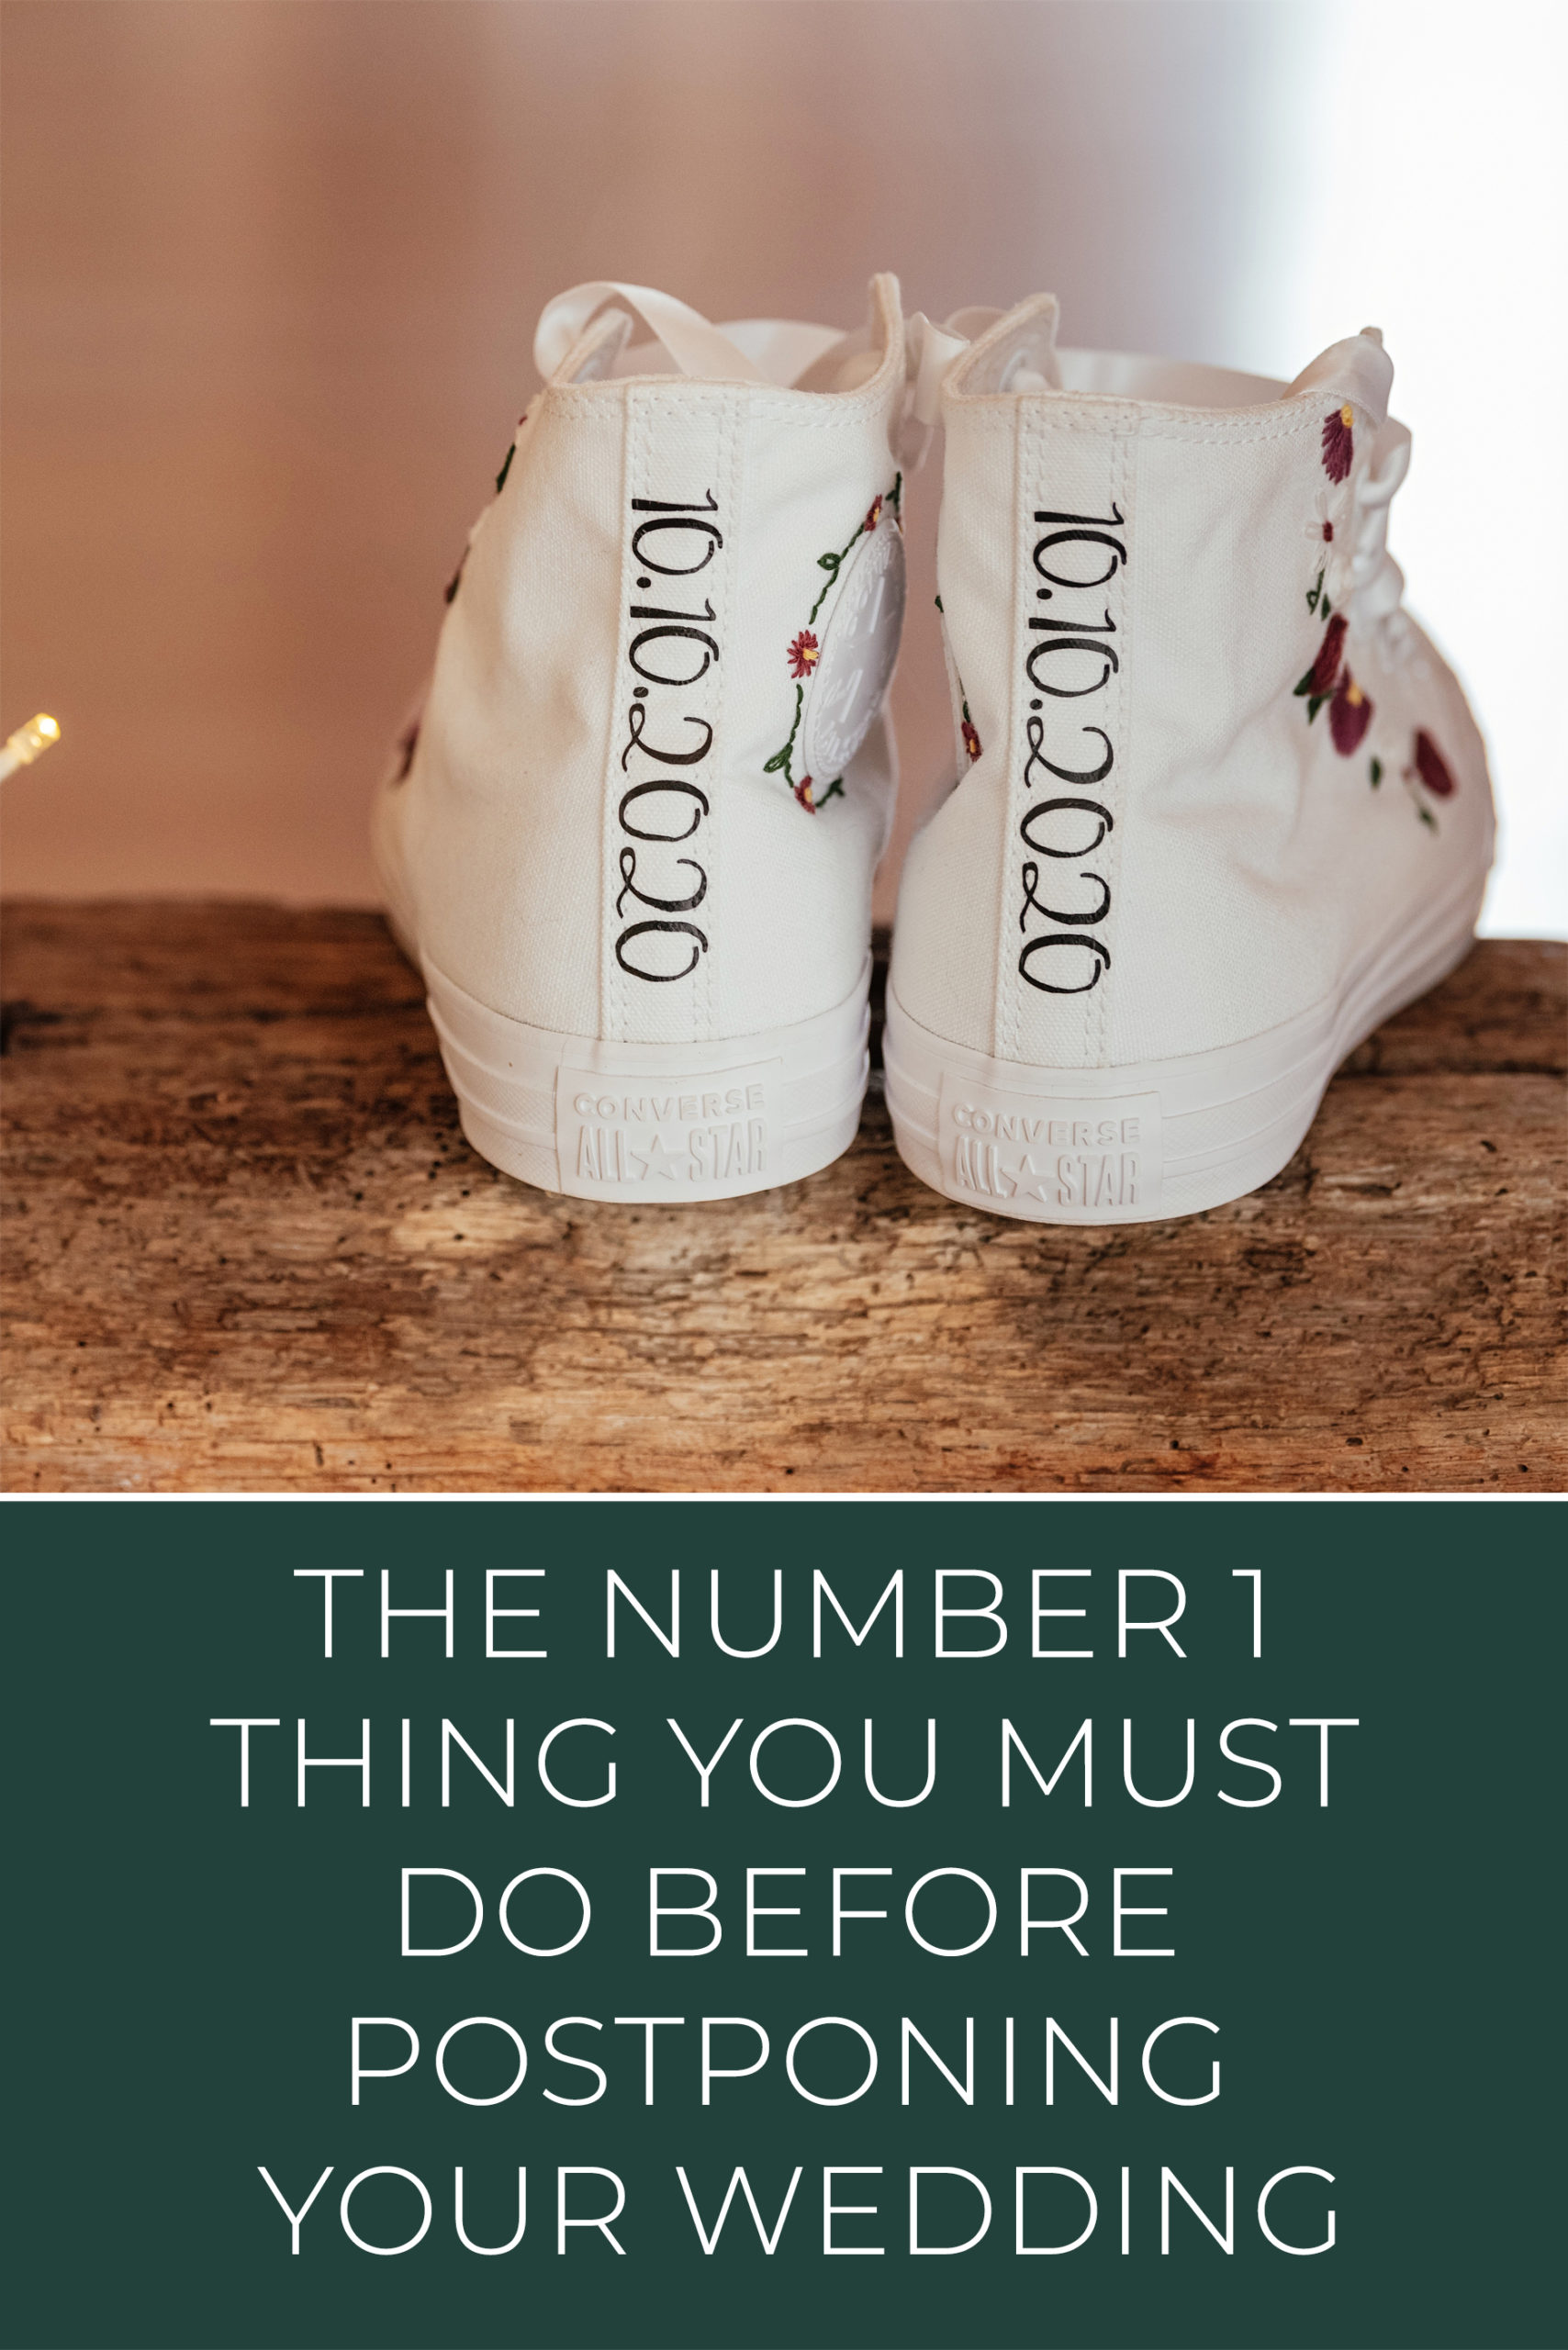 The Number 1 Thing You Must Do When Postponing Your Wedding